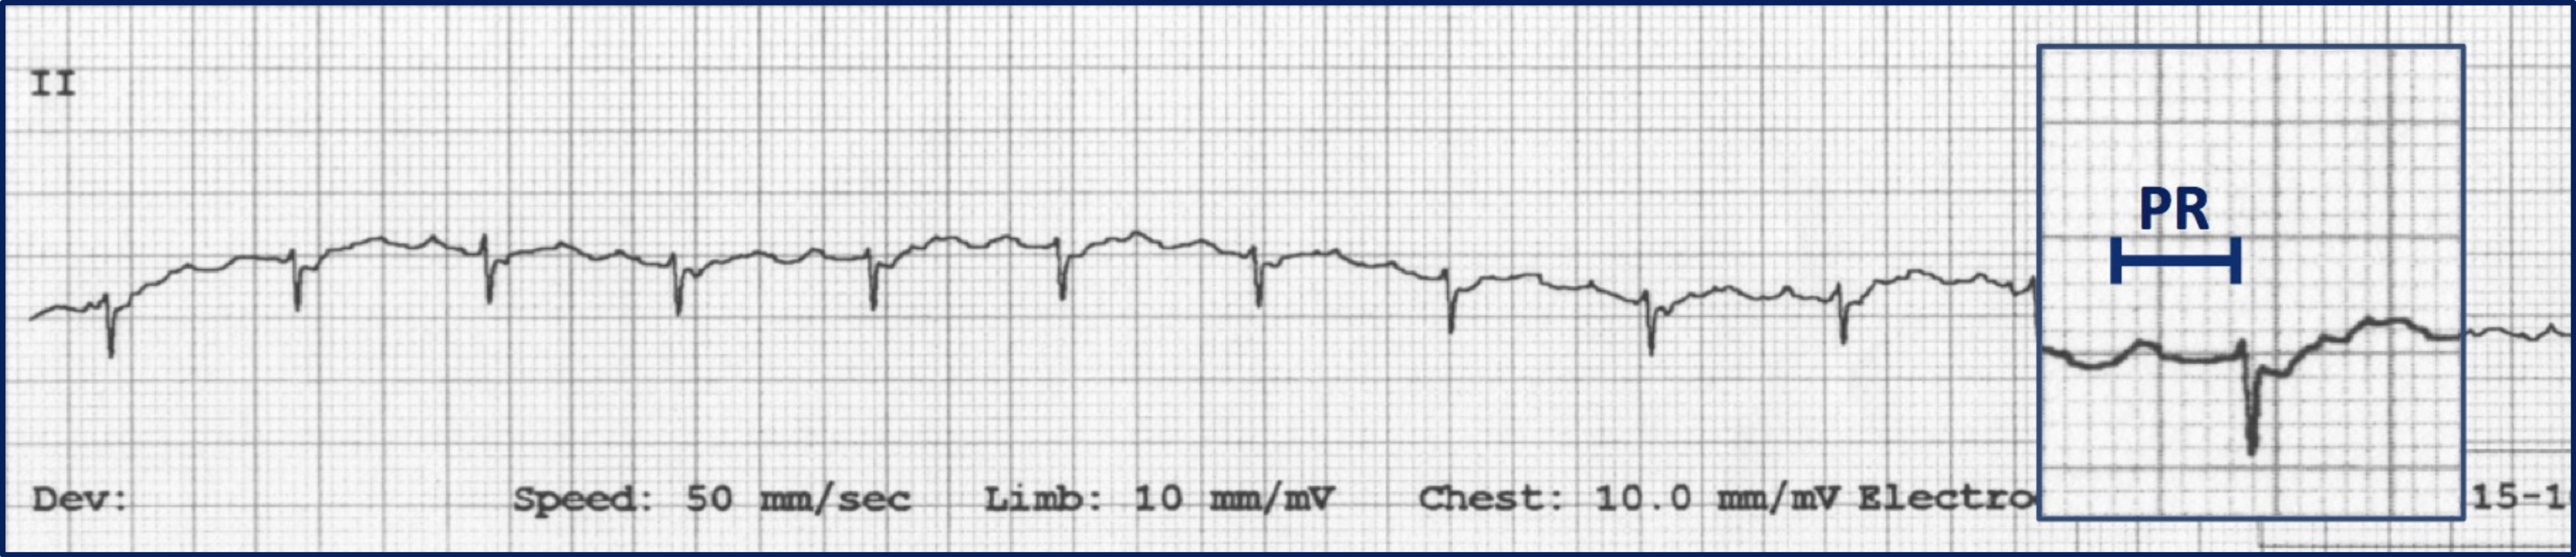 Fig 1: Lead II ECG in a cat showing overall negative QRS complex (decreased R-wave amplitude, prominent S-wave) consistent with a ventricular conduction disturbance. Prolonged PR interval (inset) indicates 1st degree atrioventricular block. Both findings suggest the possibility of cardiomyopathy.